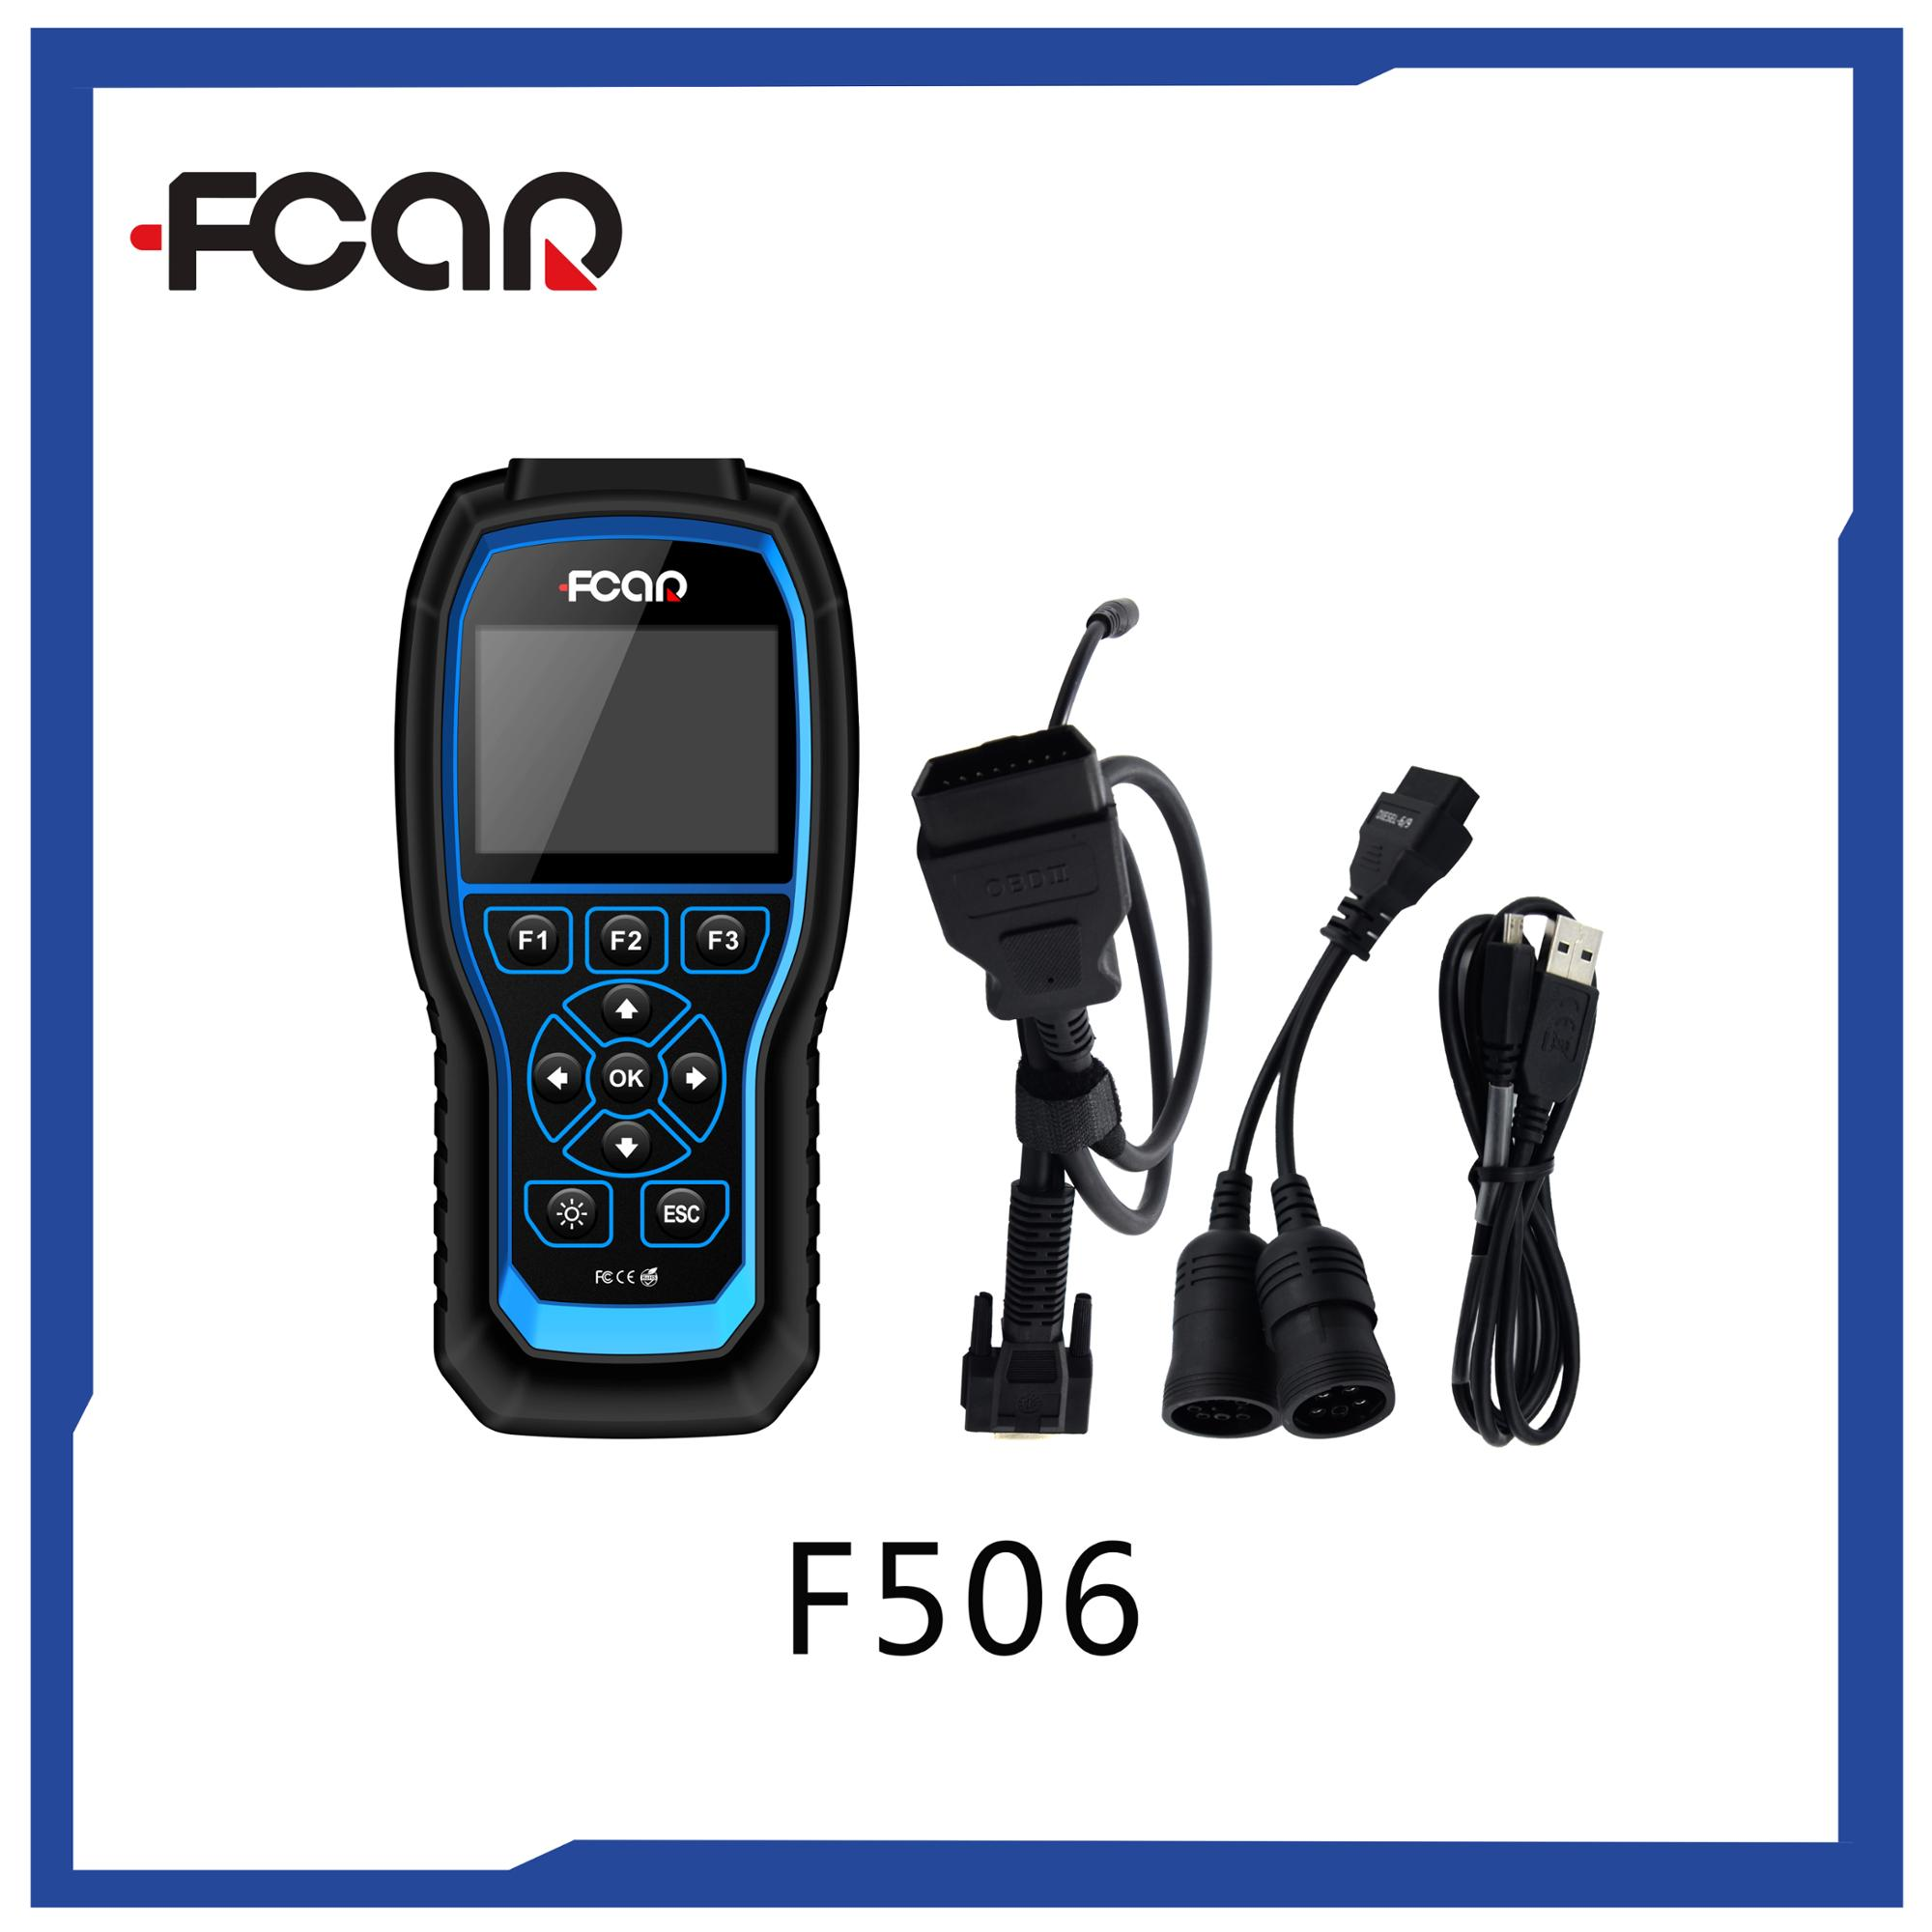 FCAR F506 OBD EOBD code reader for all cars diesel vehicles disagnostic scan tool